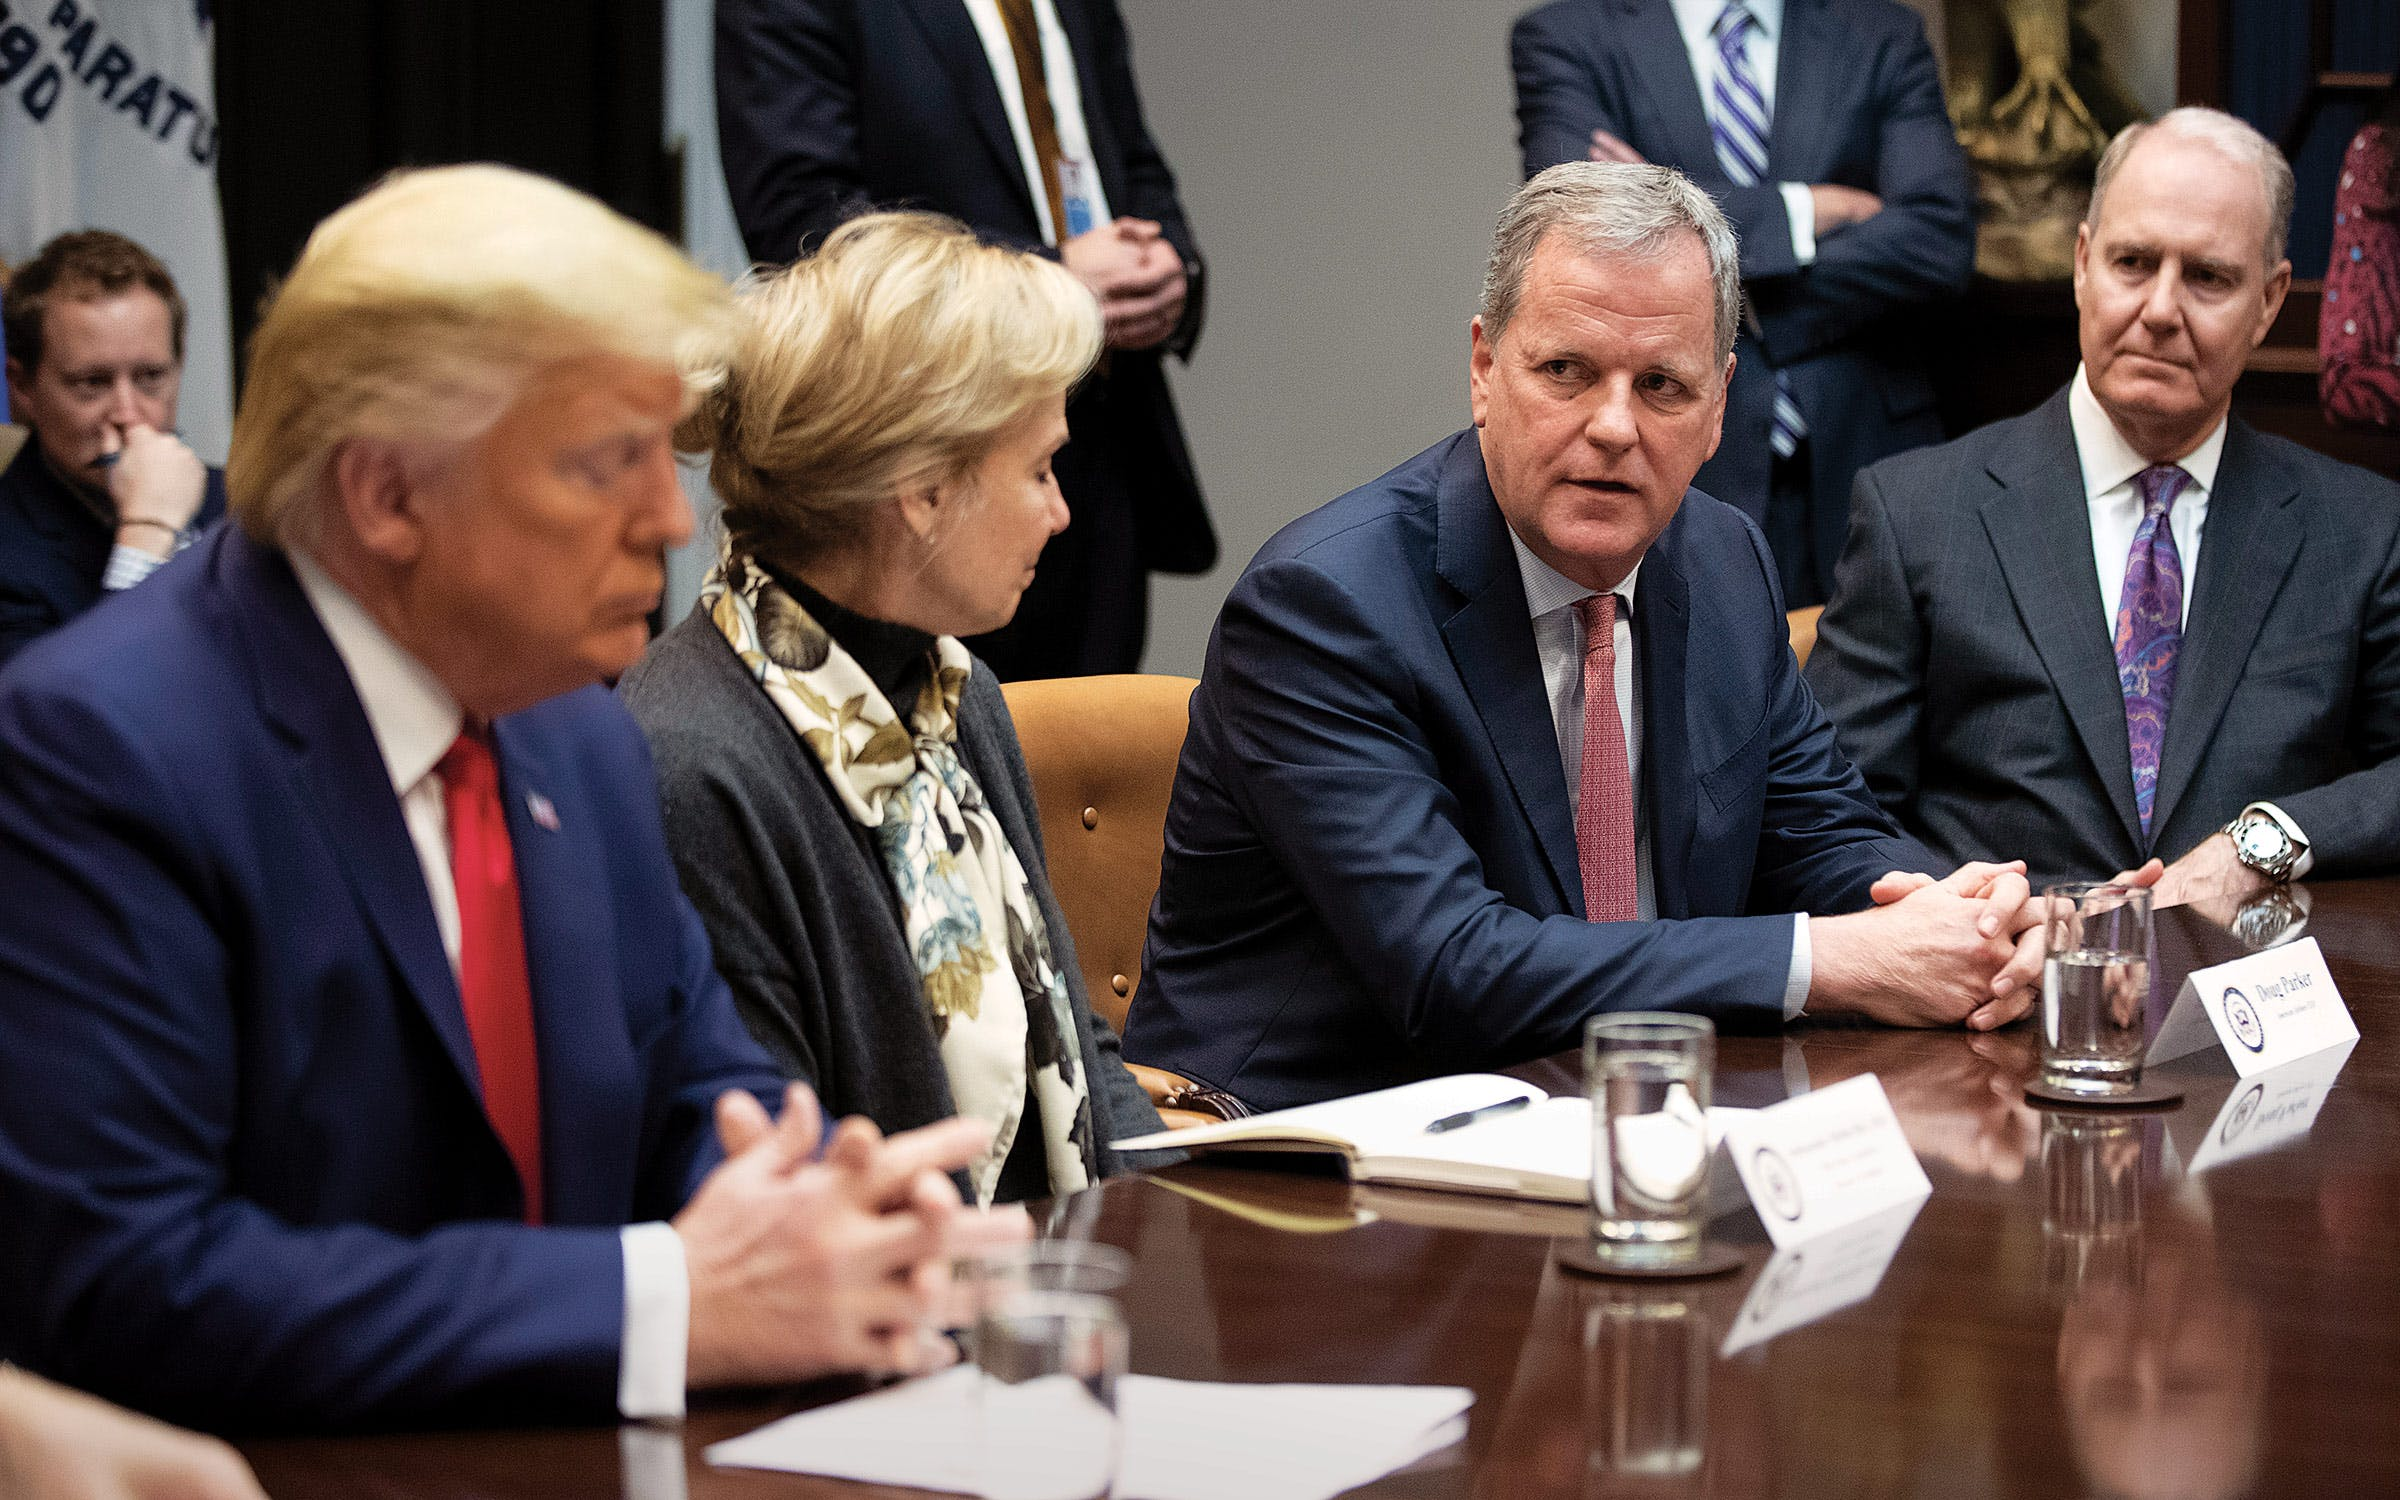 American CEO Doug Parker, second from right, with Southwest CEO Gary Kelly, right, at the White House on March 4, 2020.